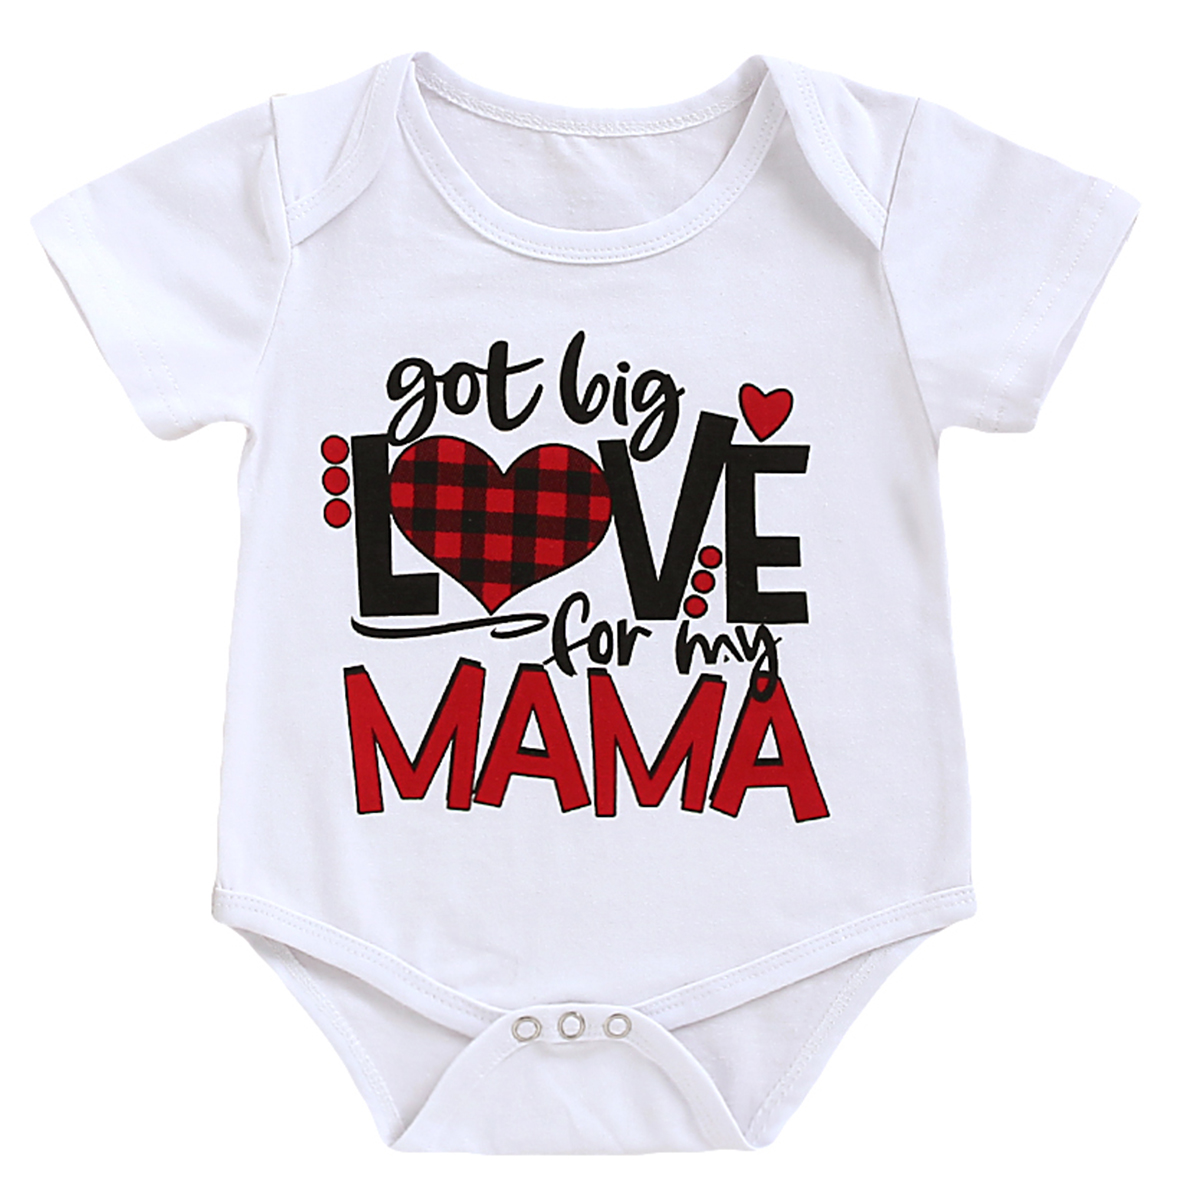 1PCS Newborn Baby Clothes Short Sleeve Girl Boy Clothing got big love for my Mama Design Cotton Rompers de bebe Costumes White image